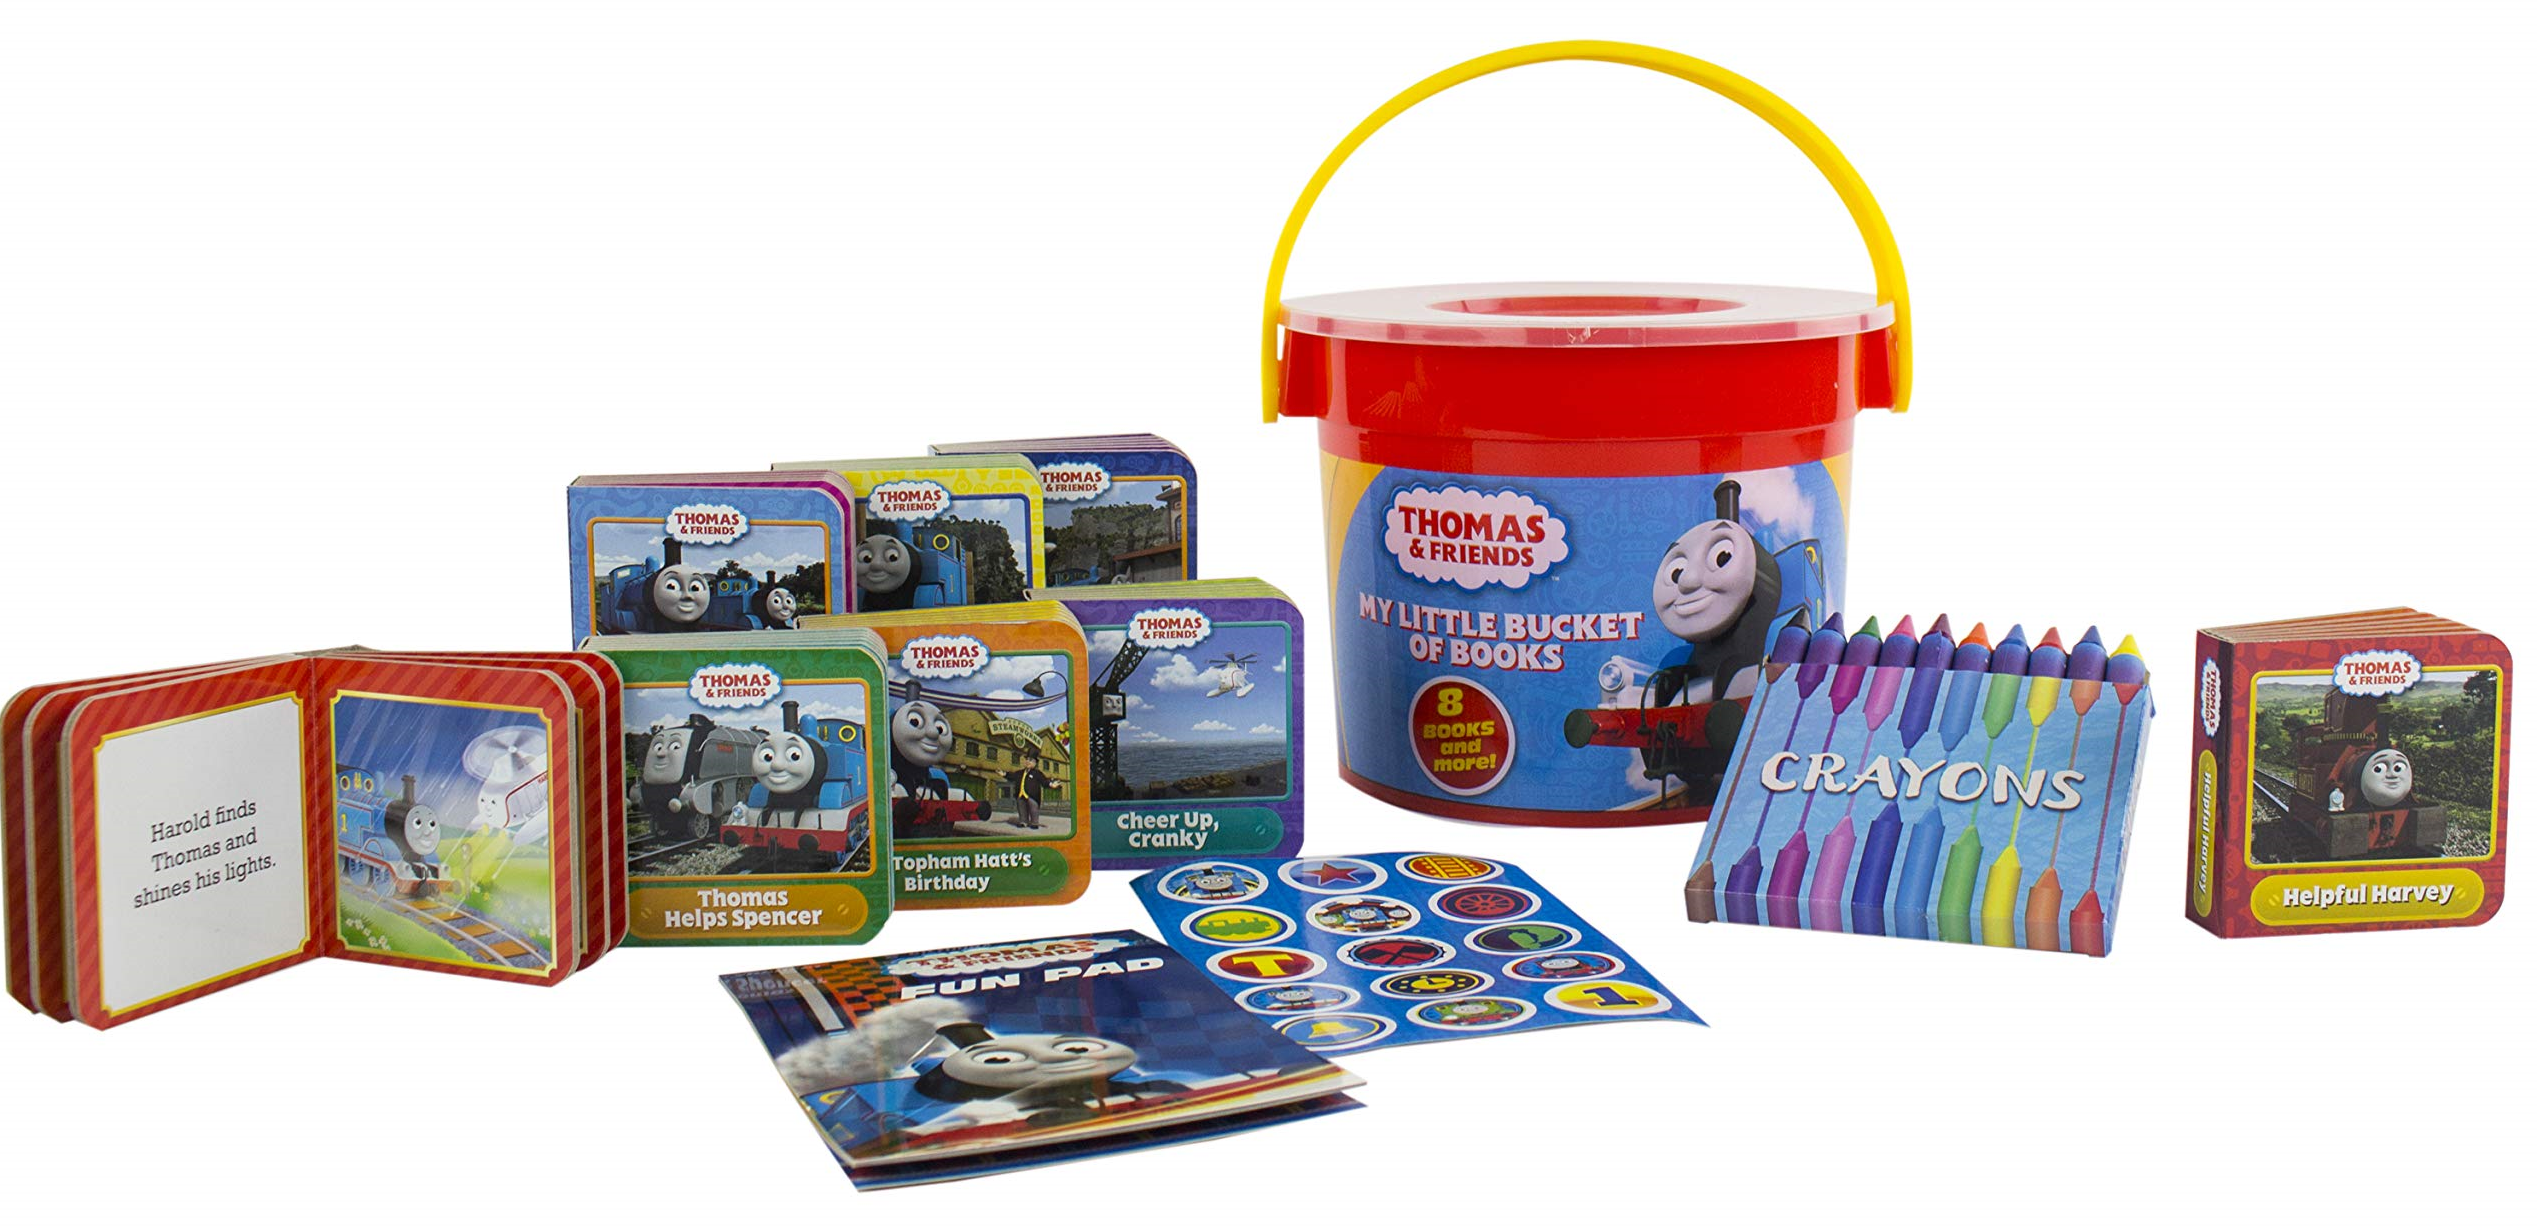 THOMAS THE TRAIN /& FRIENDS MY LITTLE BUCKET OF BOOKS Book Set Crayons /& More